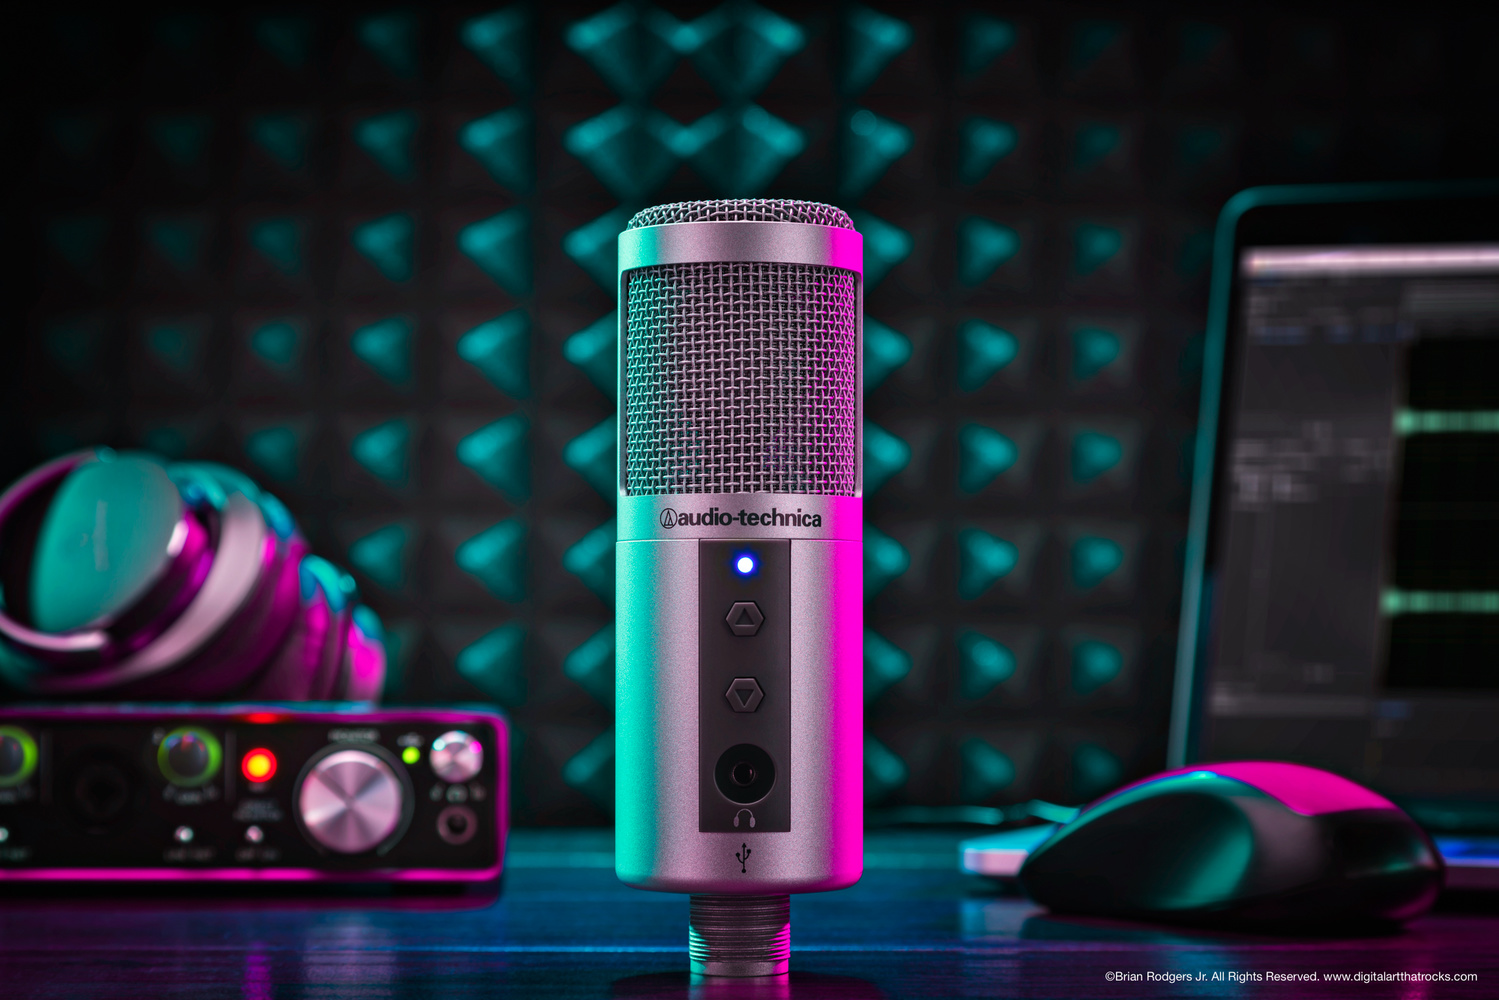 Audio Technica Microphone Hero Shot by Brian Rodgers Jr.